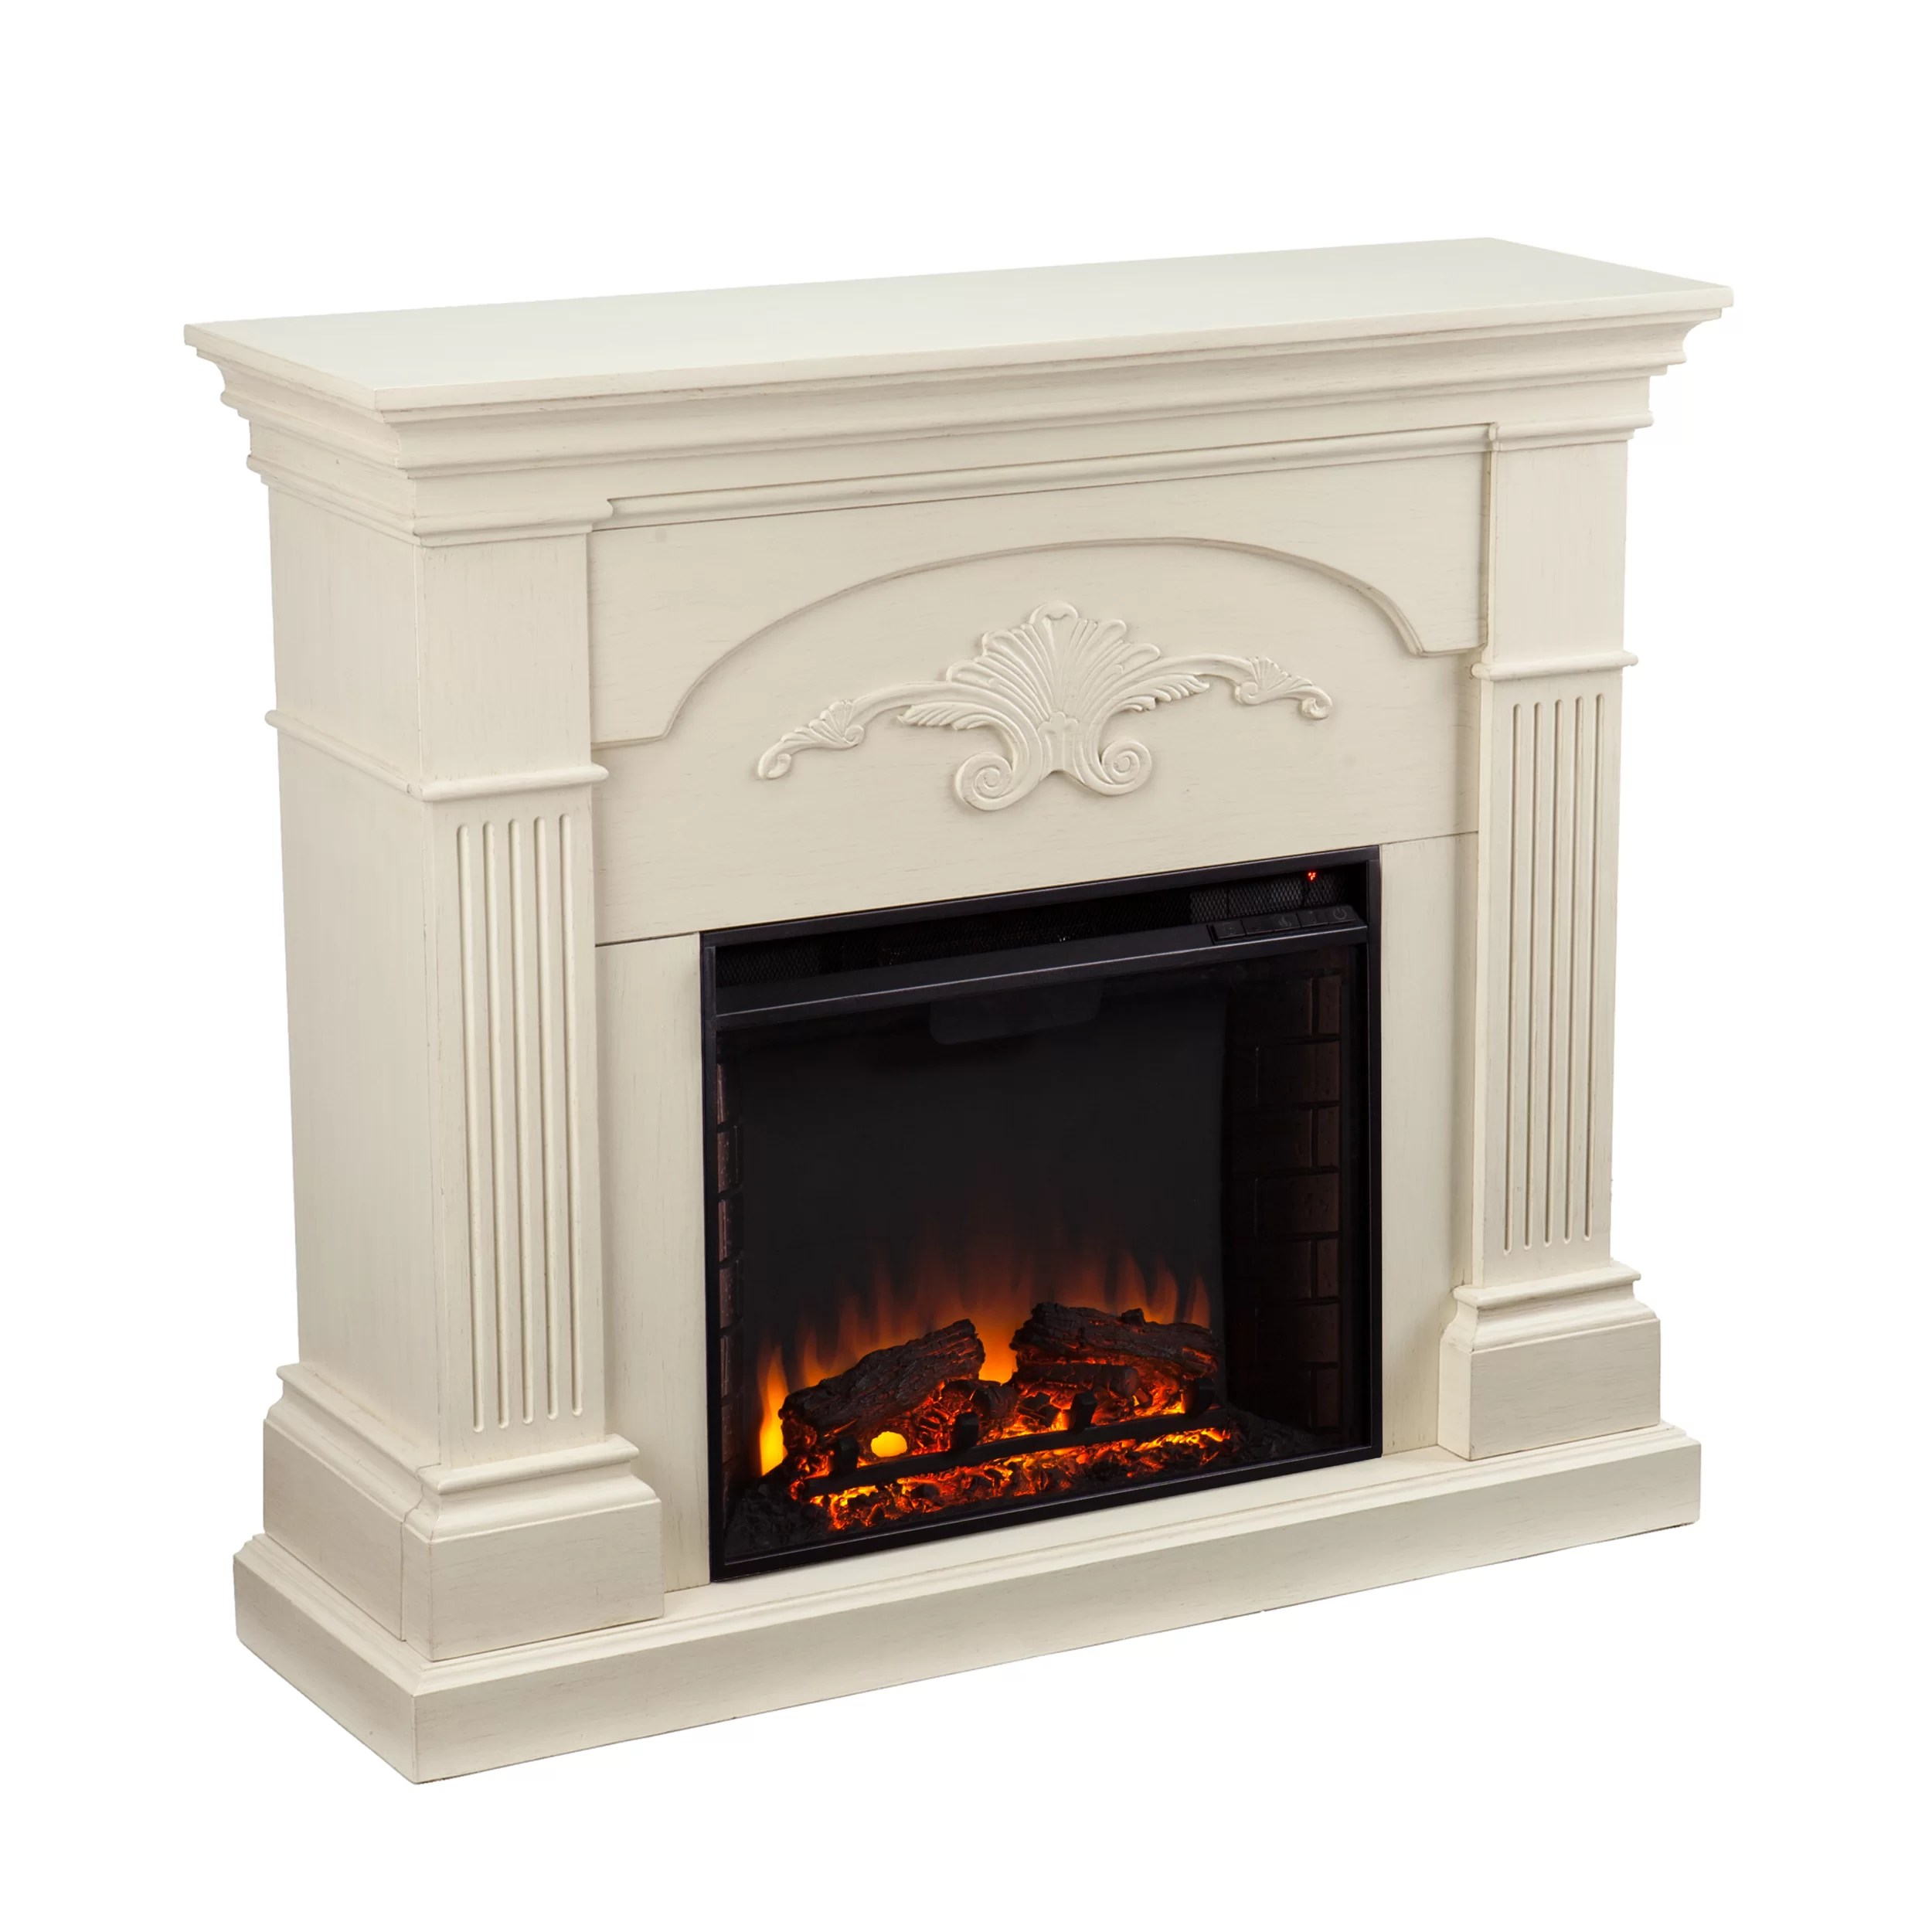 Rosalind Wheeler Nathans Electric Fireplace  Reviews